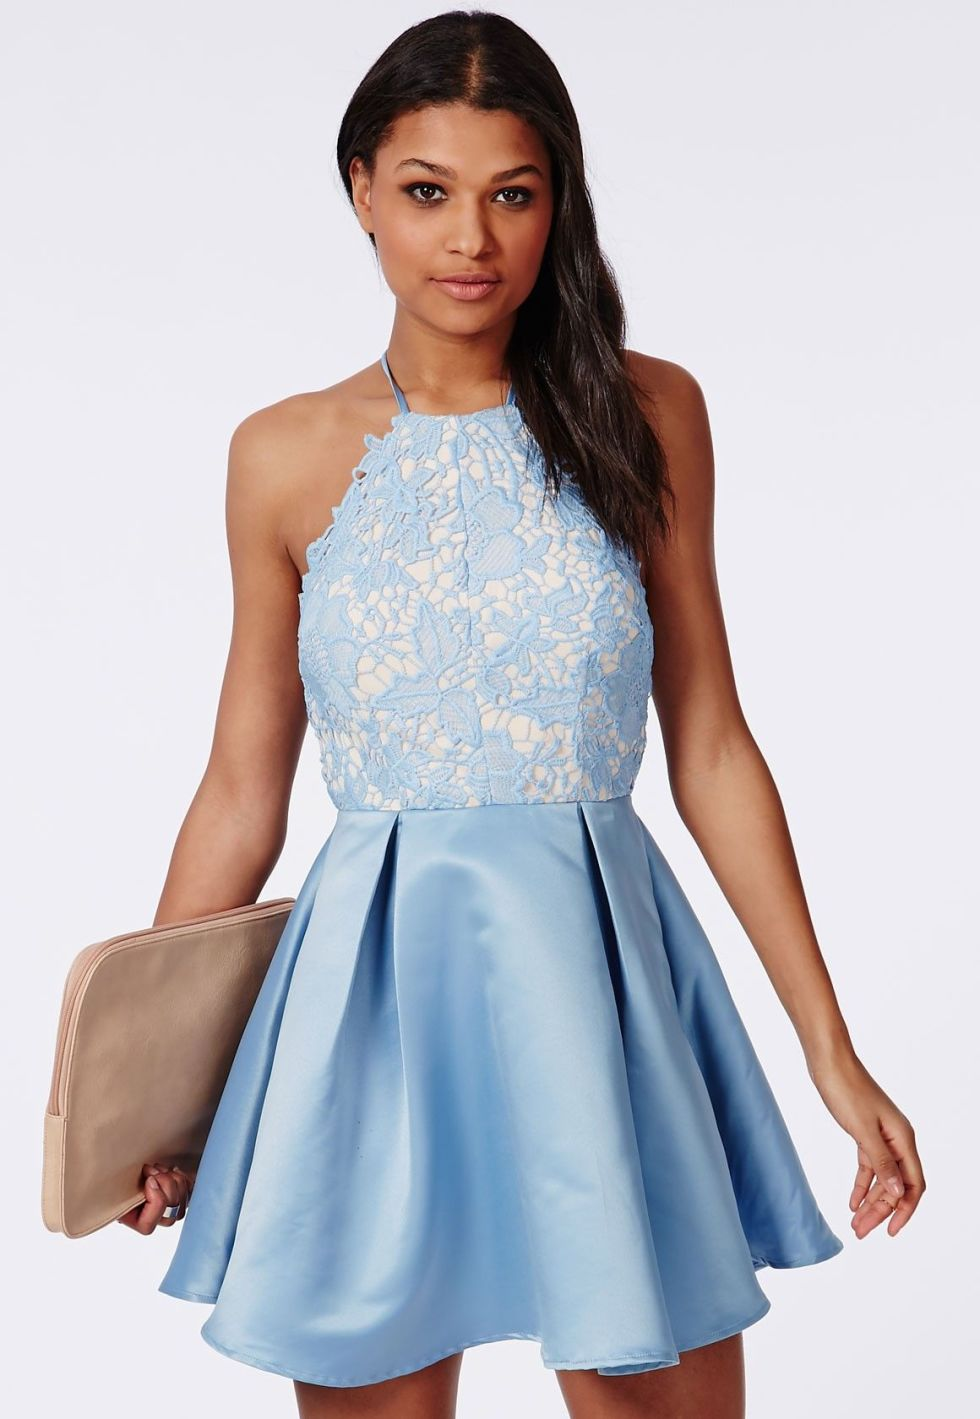 Best stores for prom dresses - Dress on sale